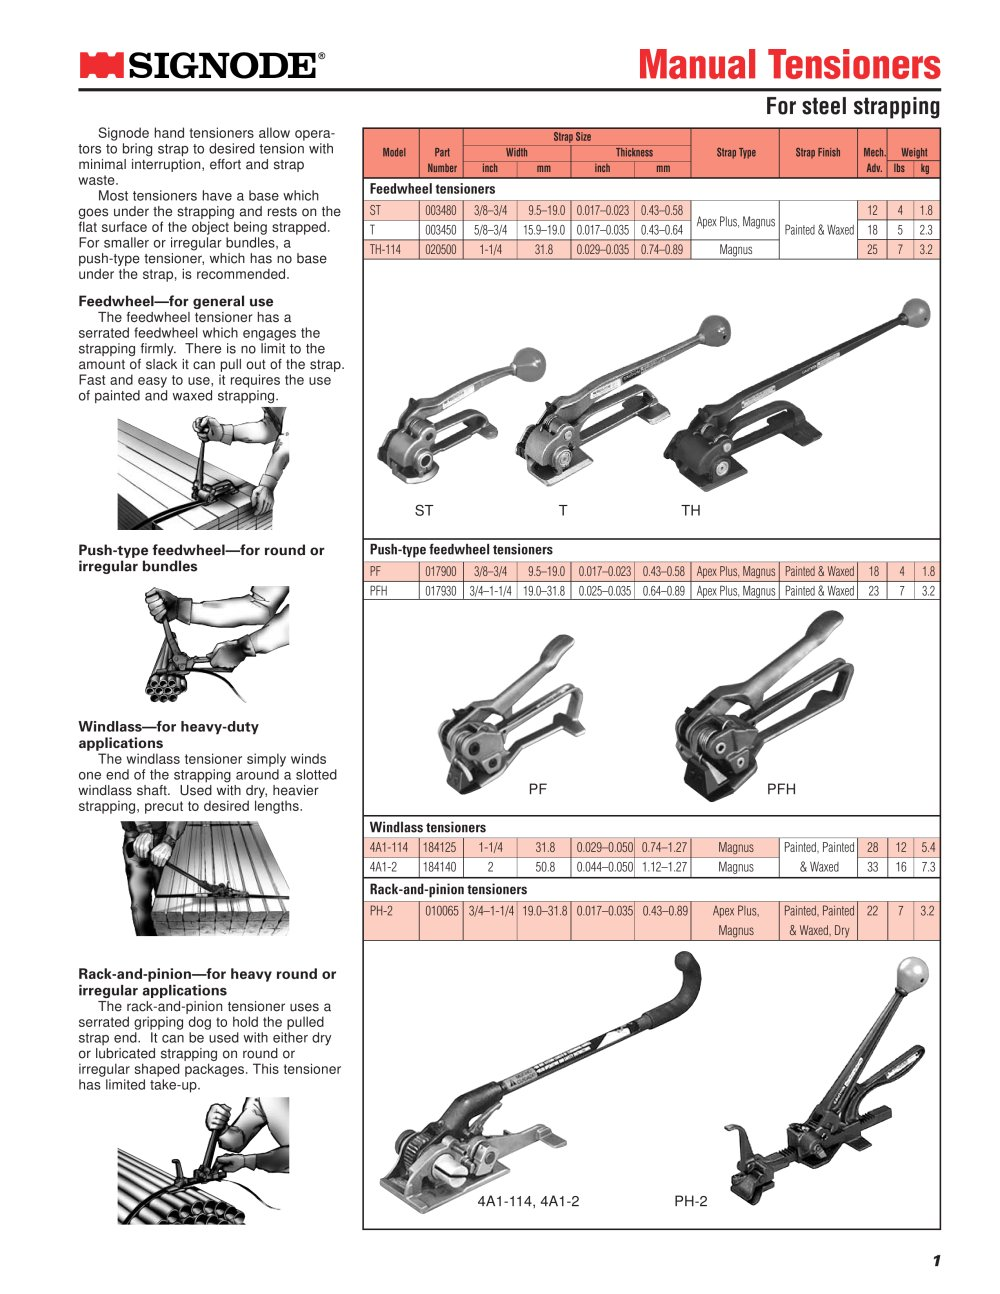 Manual tensioner: ST, T, TH, PF, PFH - 1 / 1 Pages